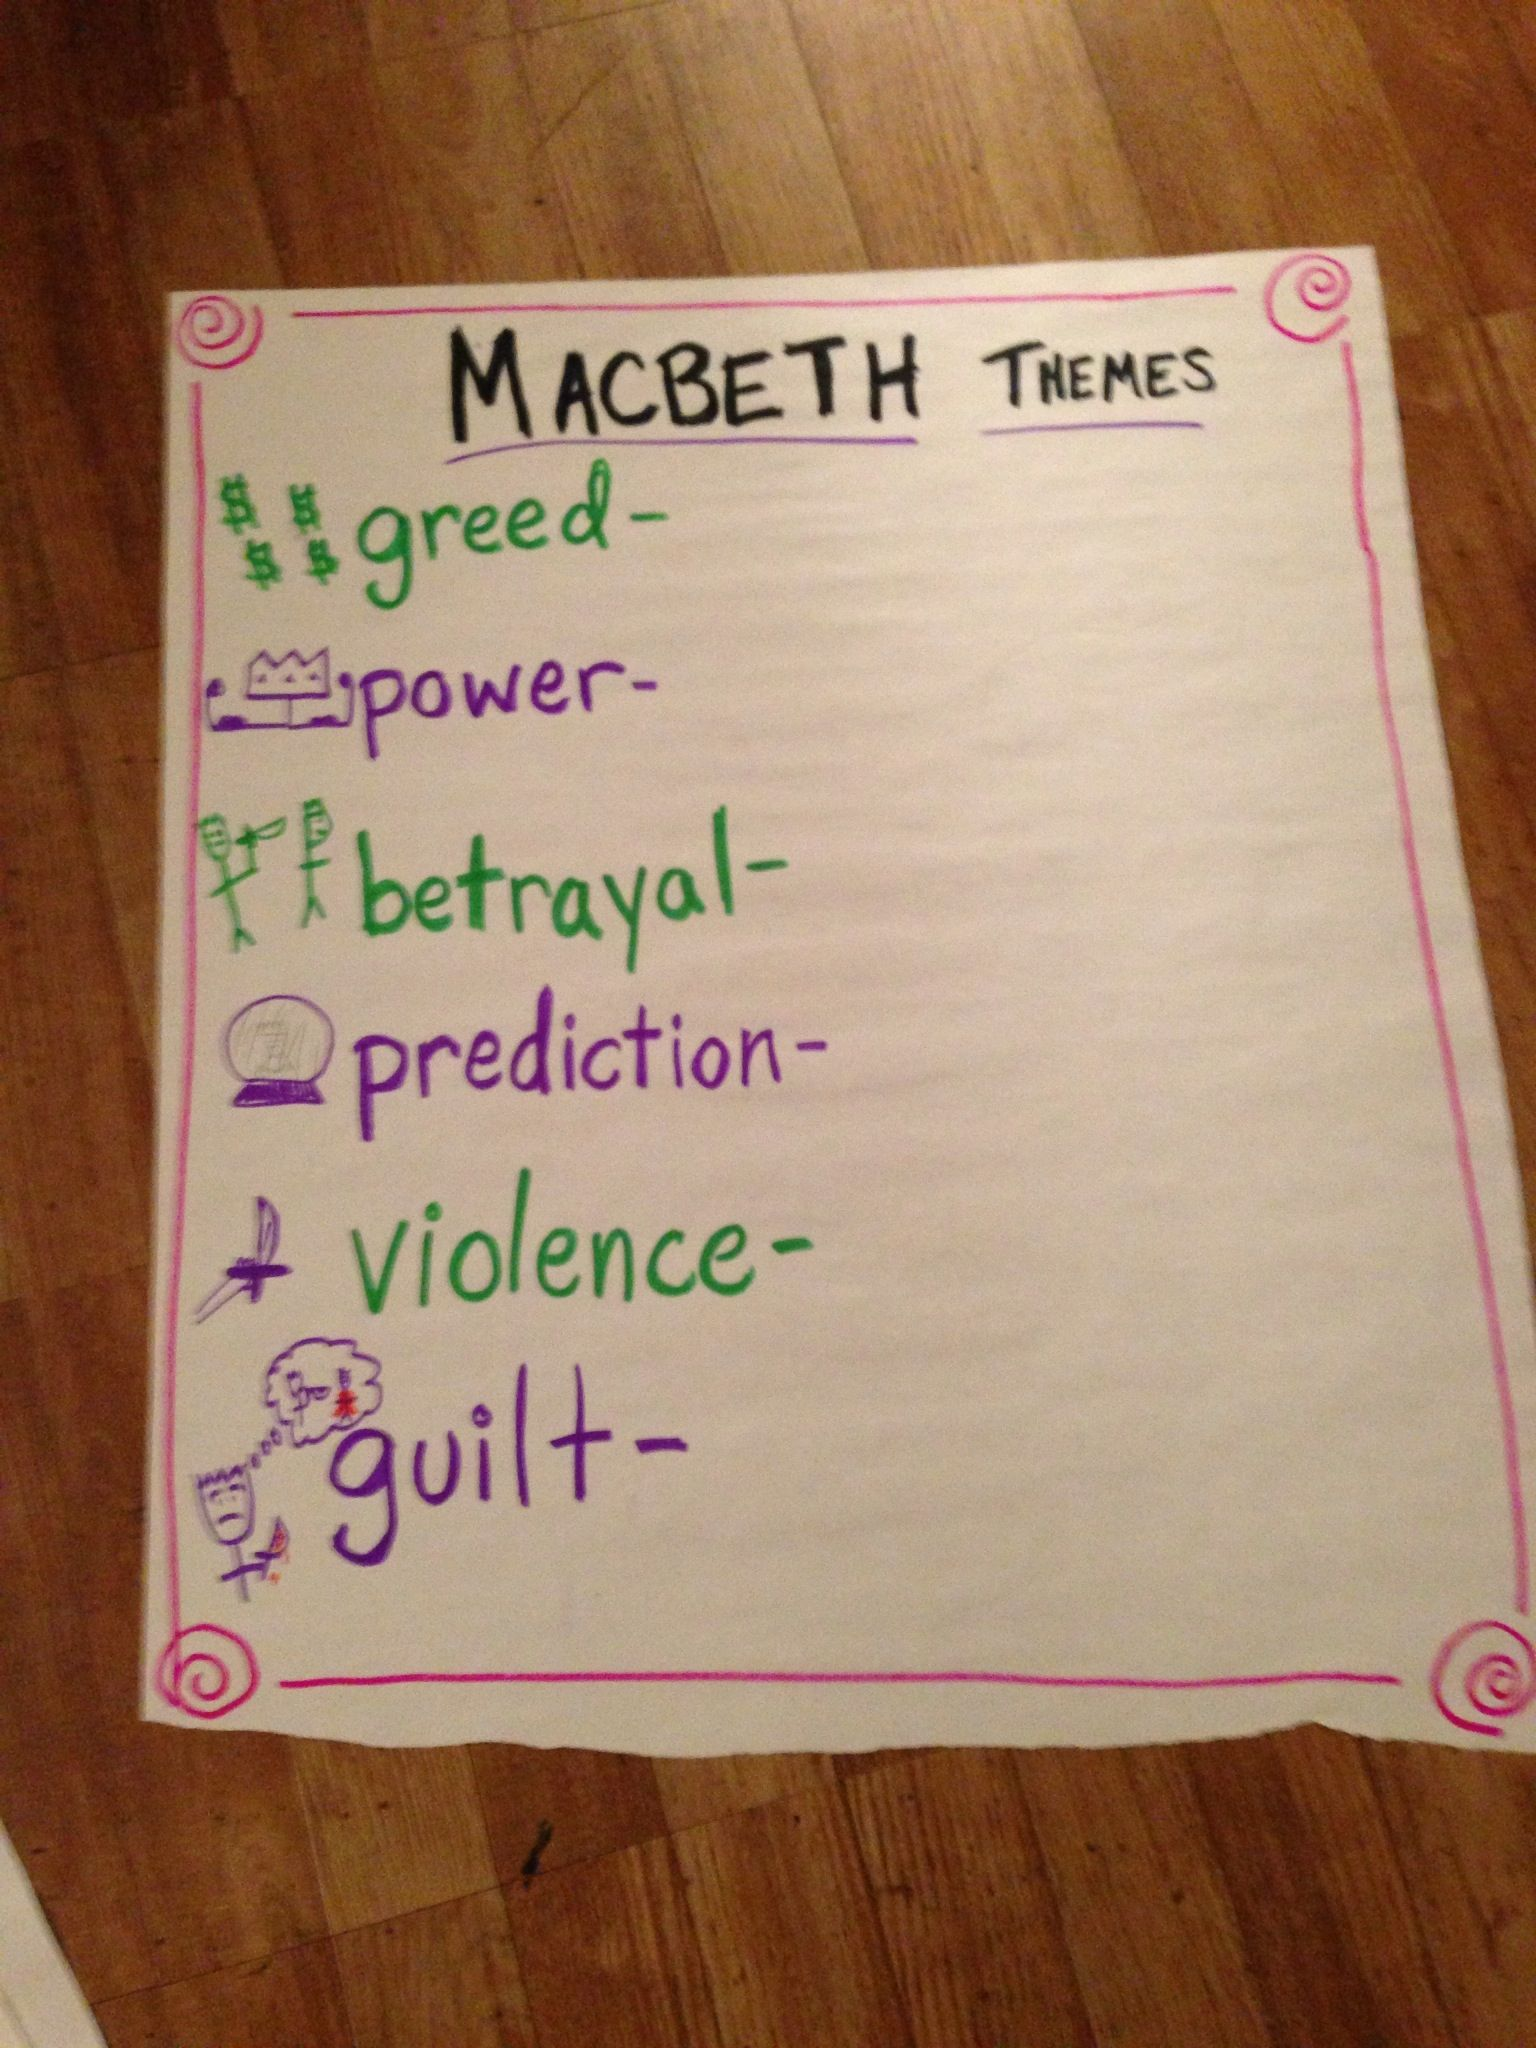 main macbeth themes greed macbeth and his wife want more than  macbeth theme essay our work